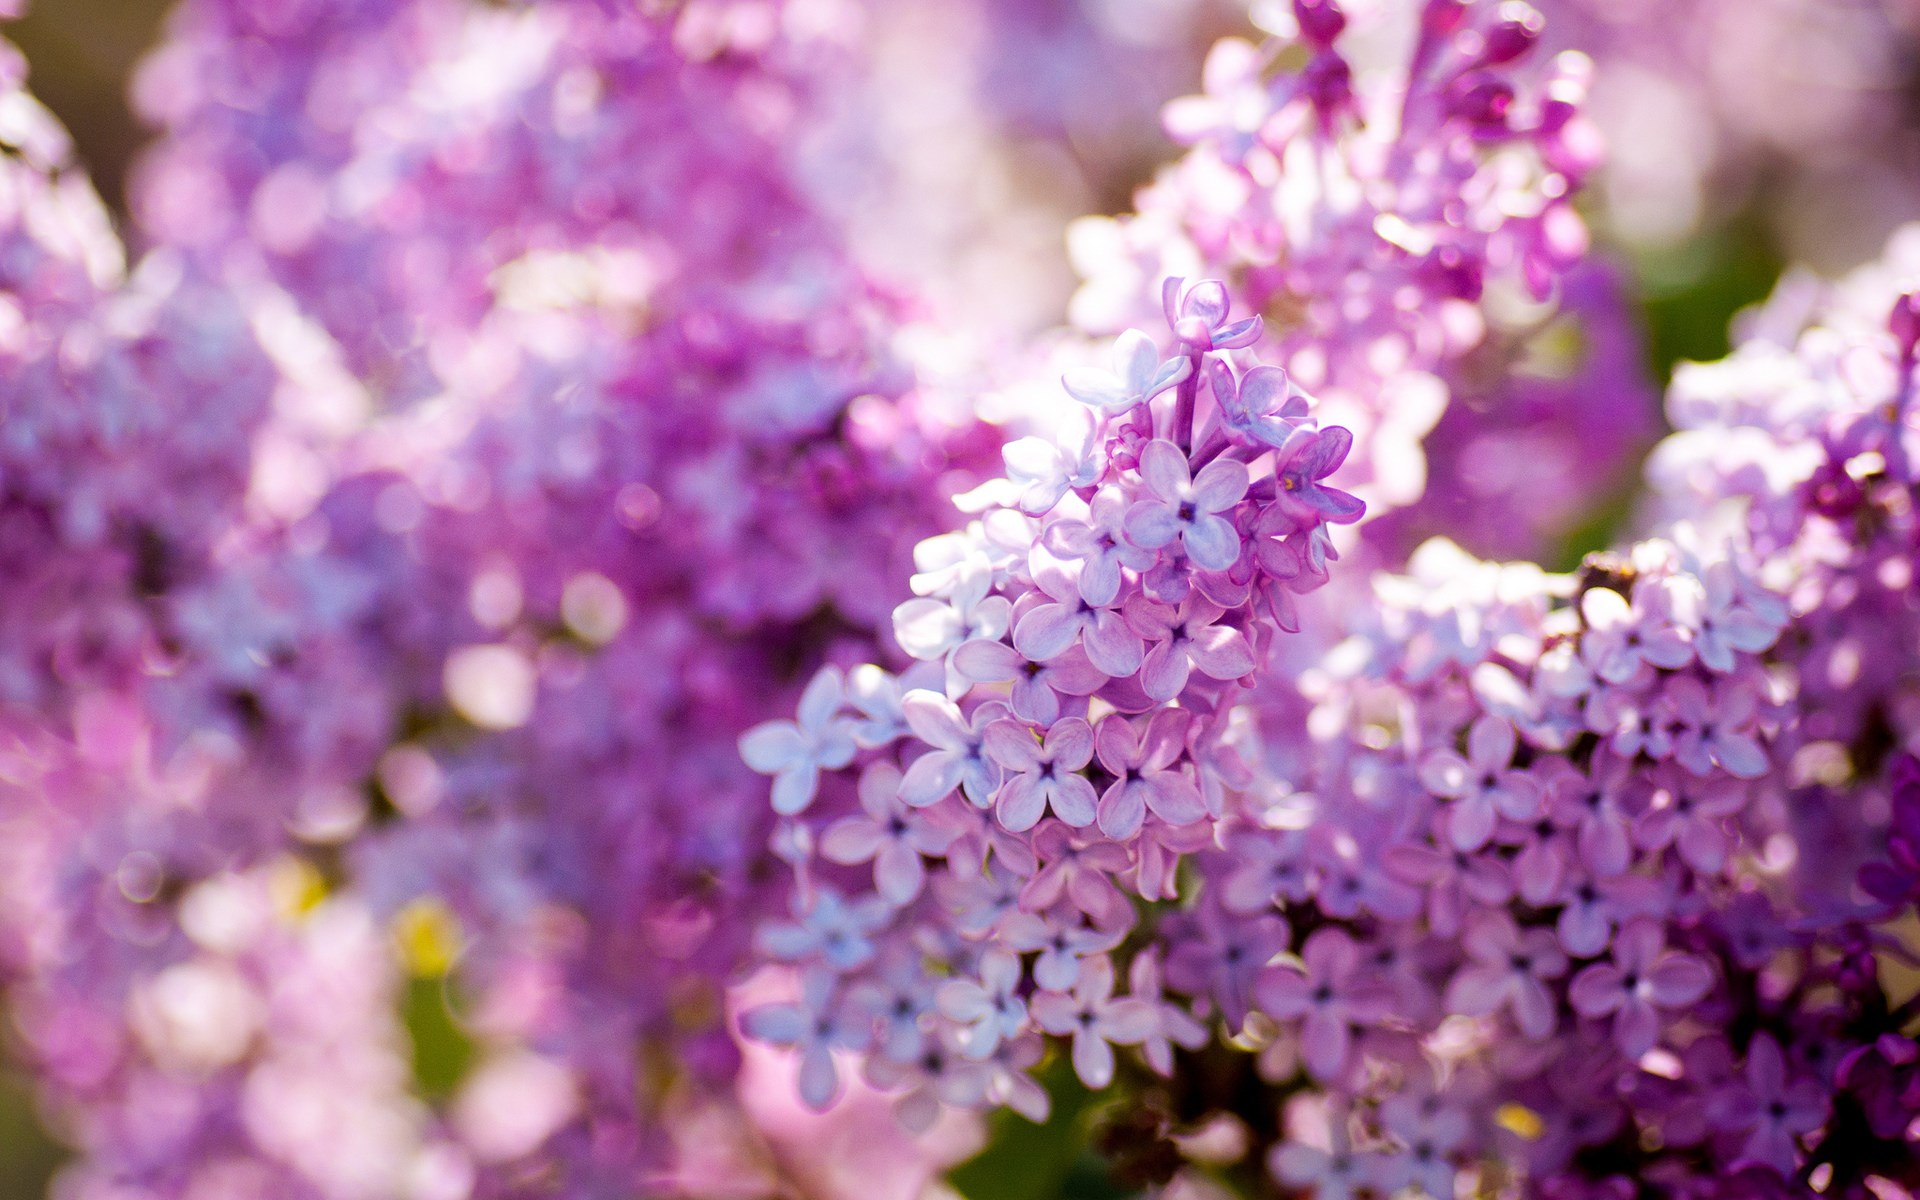 lilac flower wallpaper jpg - photo #15